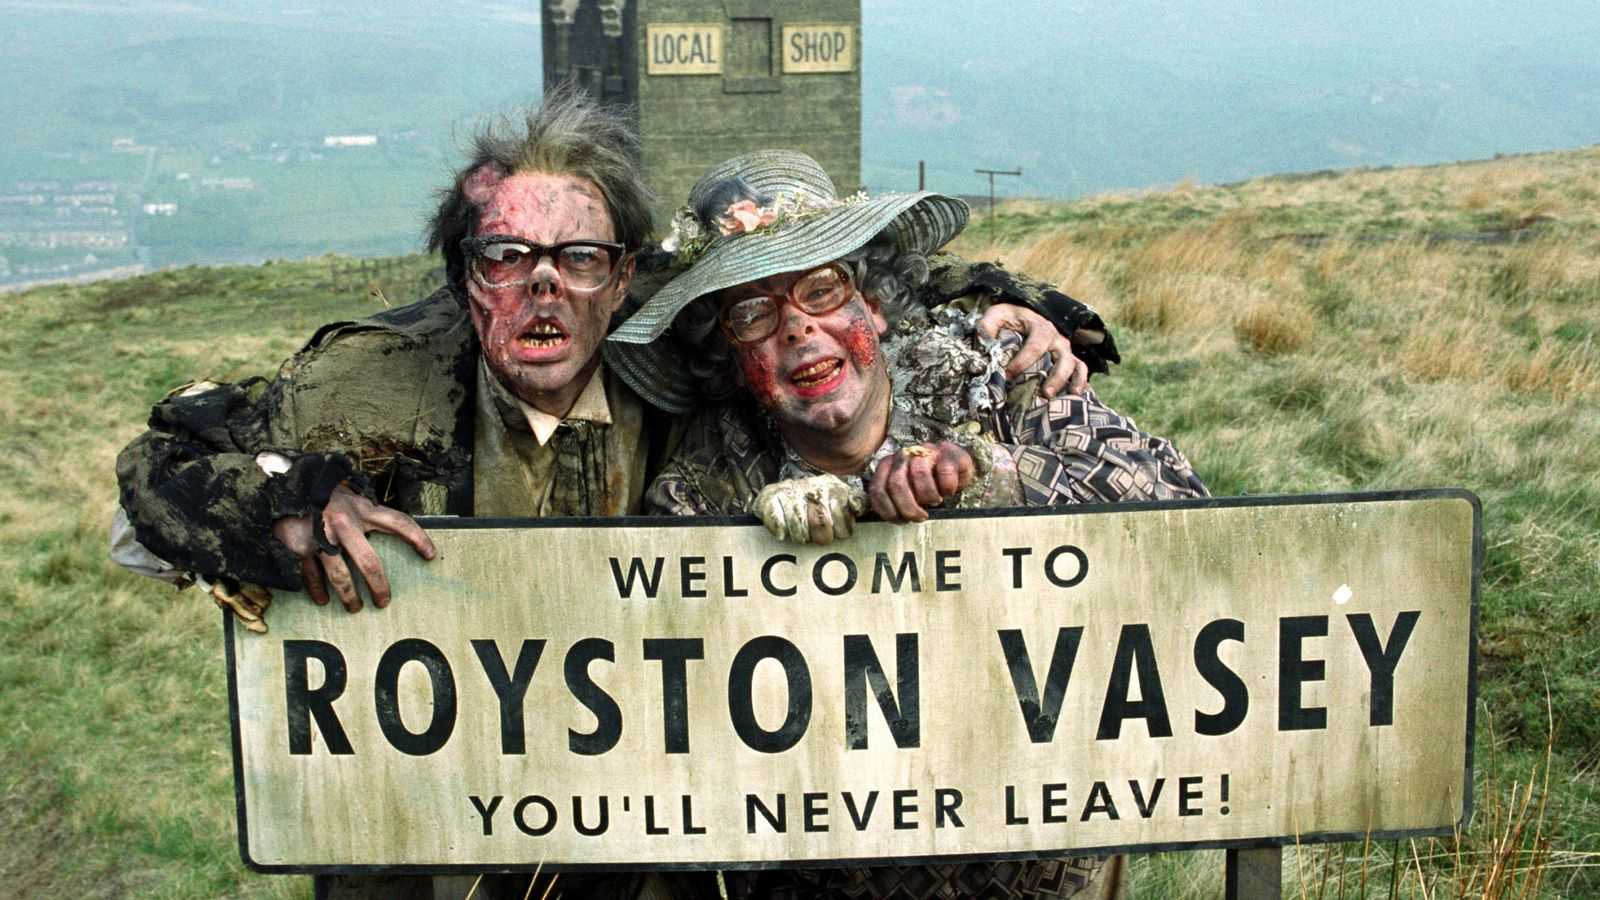 When are the new League Of Gentlemen Christmas specials on?